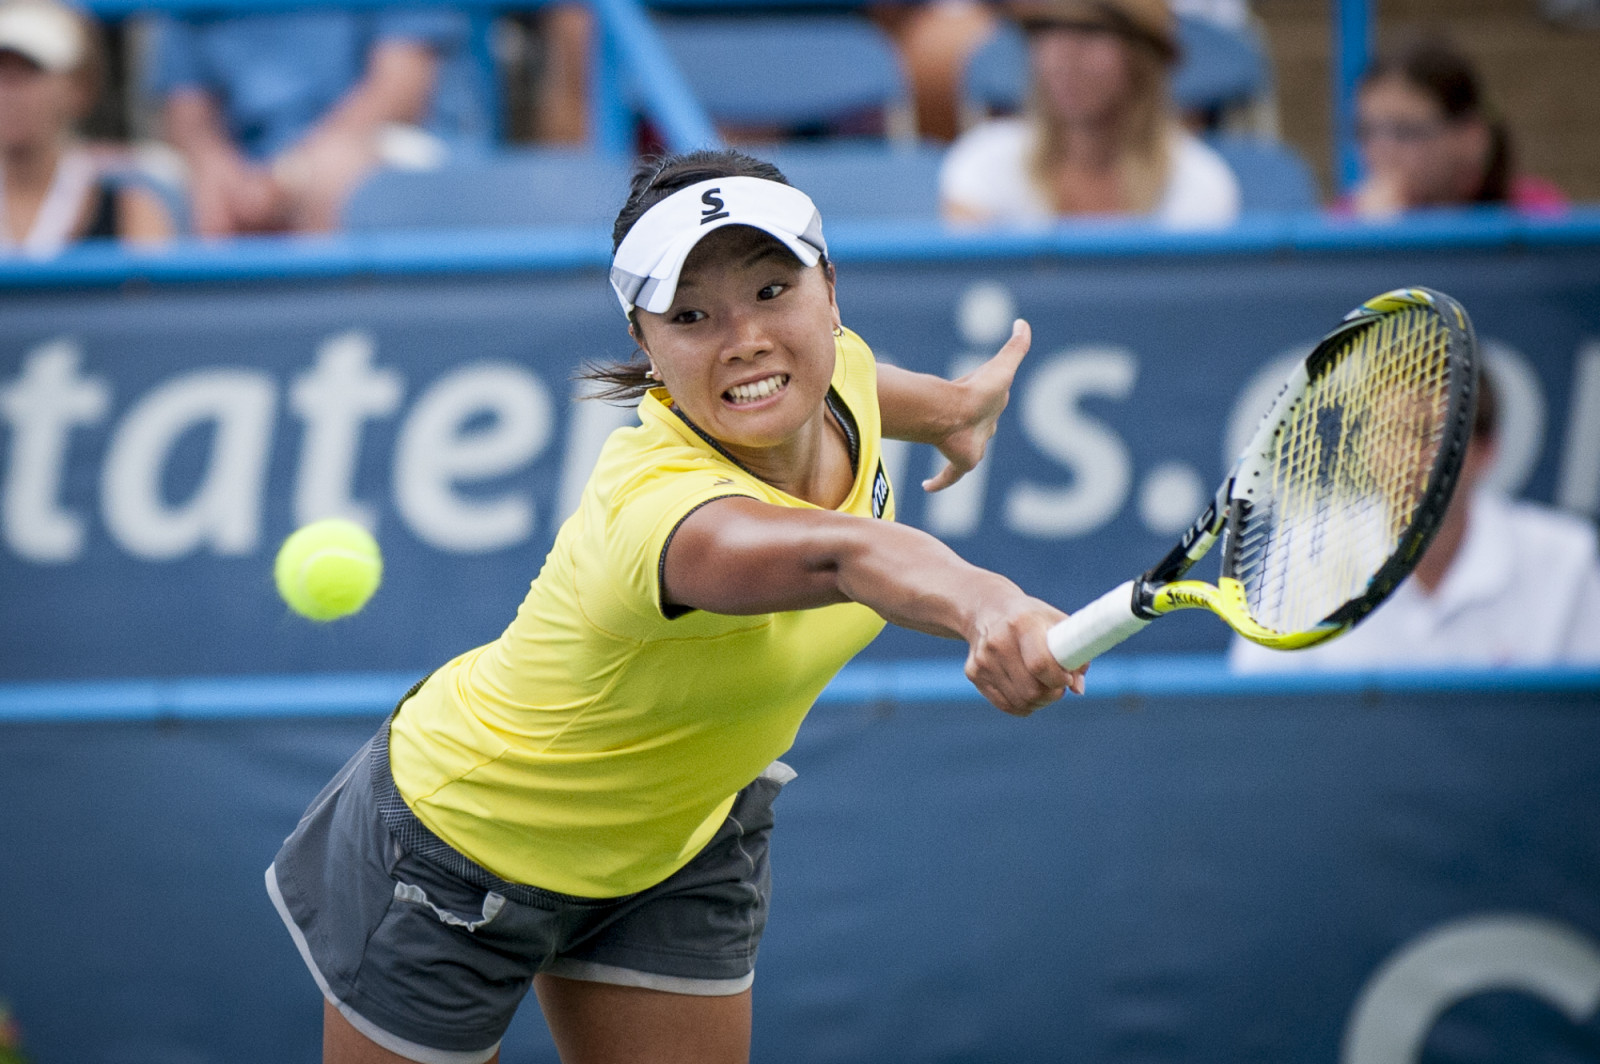 Kurumi Nara of Japan returns a shot to Svetlana Kuznetsova of Russia during their finals singles match at the Citi Open ATP tennis tournament in Washington, DC, USA, 3 Aug 2014. Kuznetsova won the women's final 6-3, 4-6, 6-4.